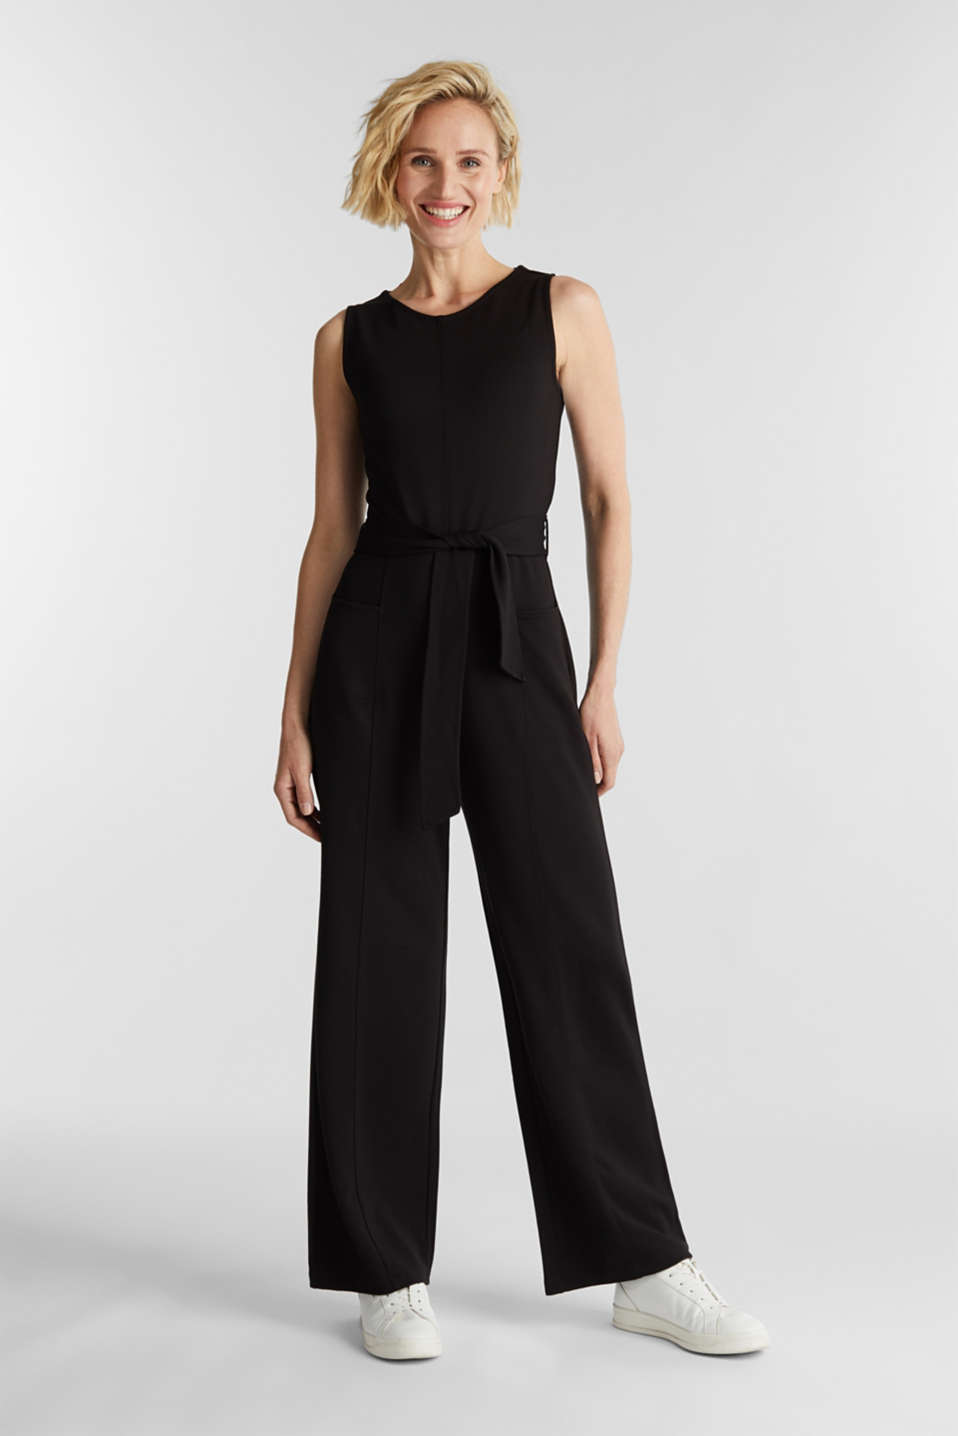 Esprit - Stretch jersey jumpsuit with belt